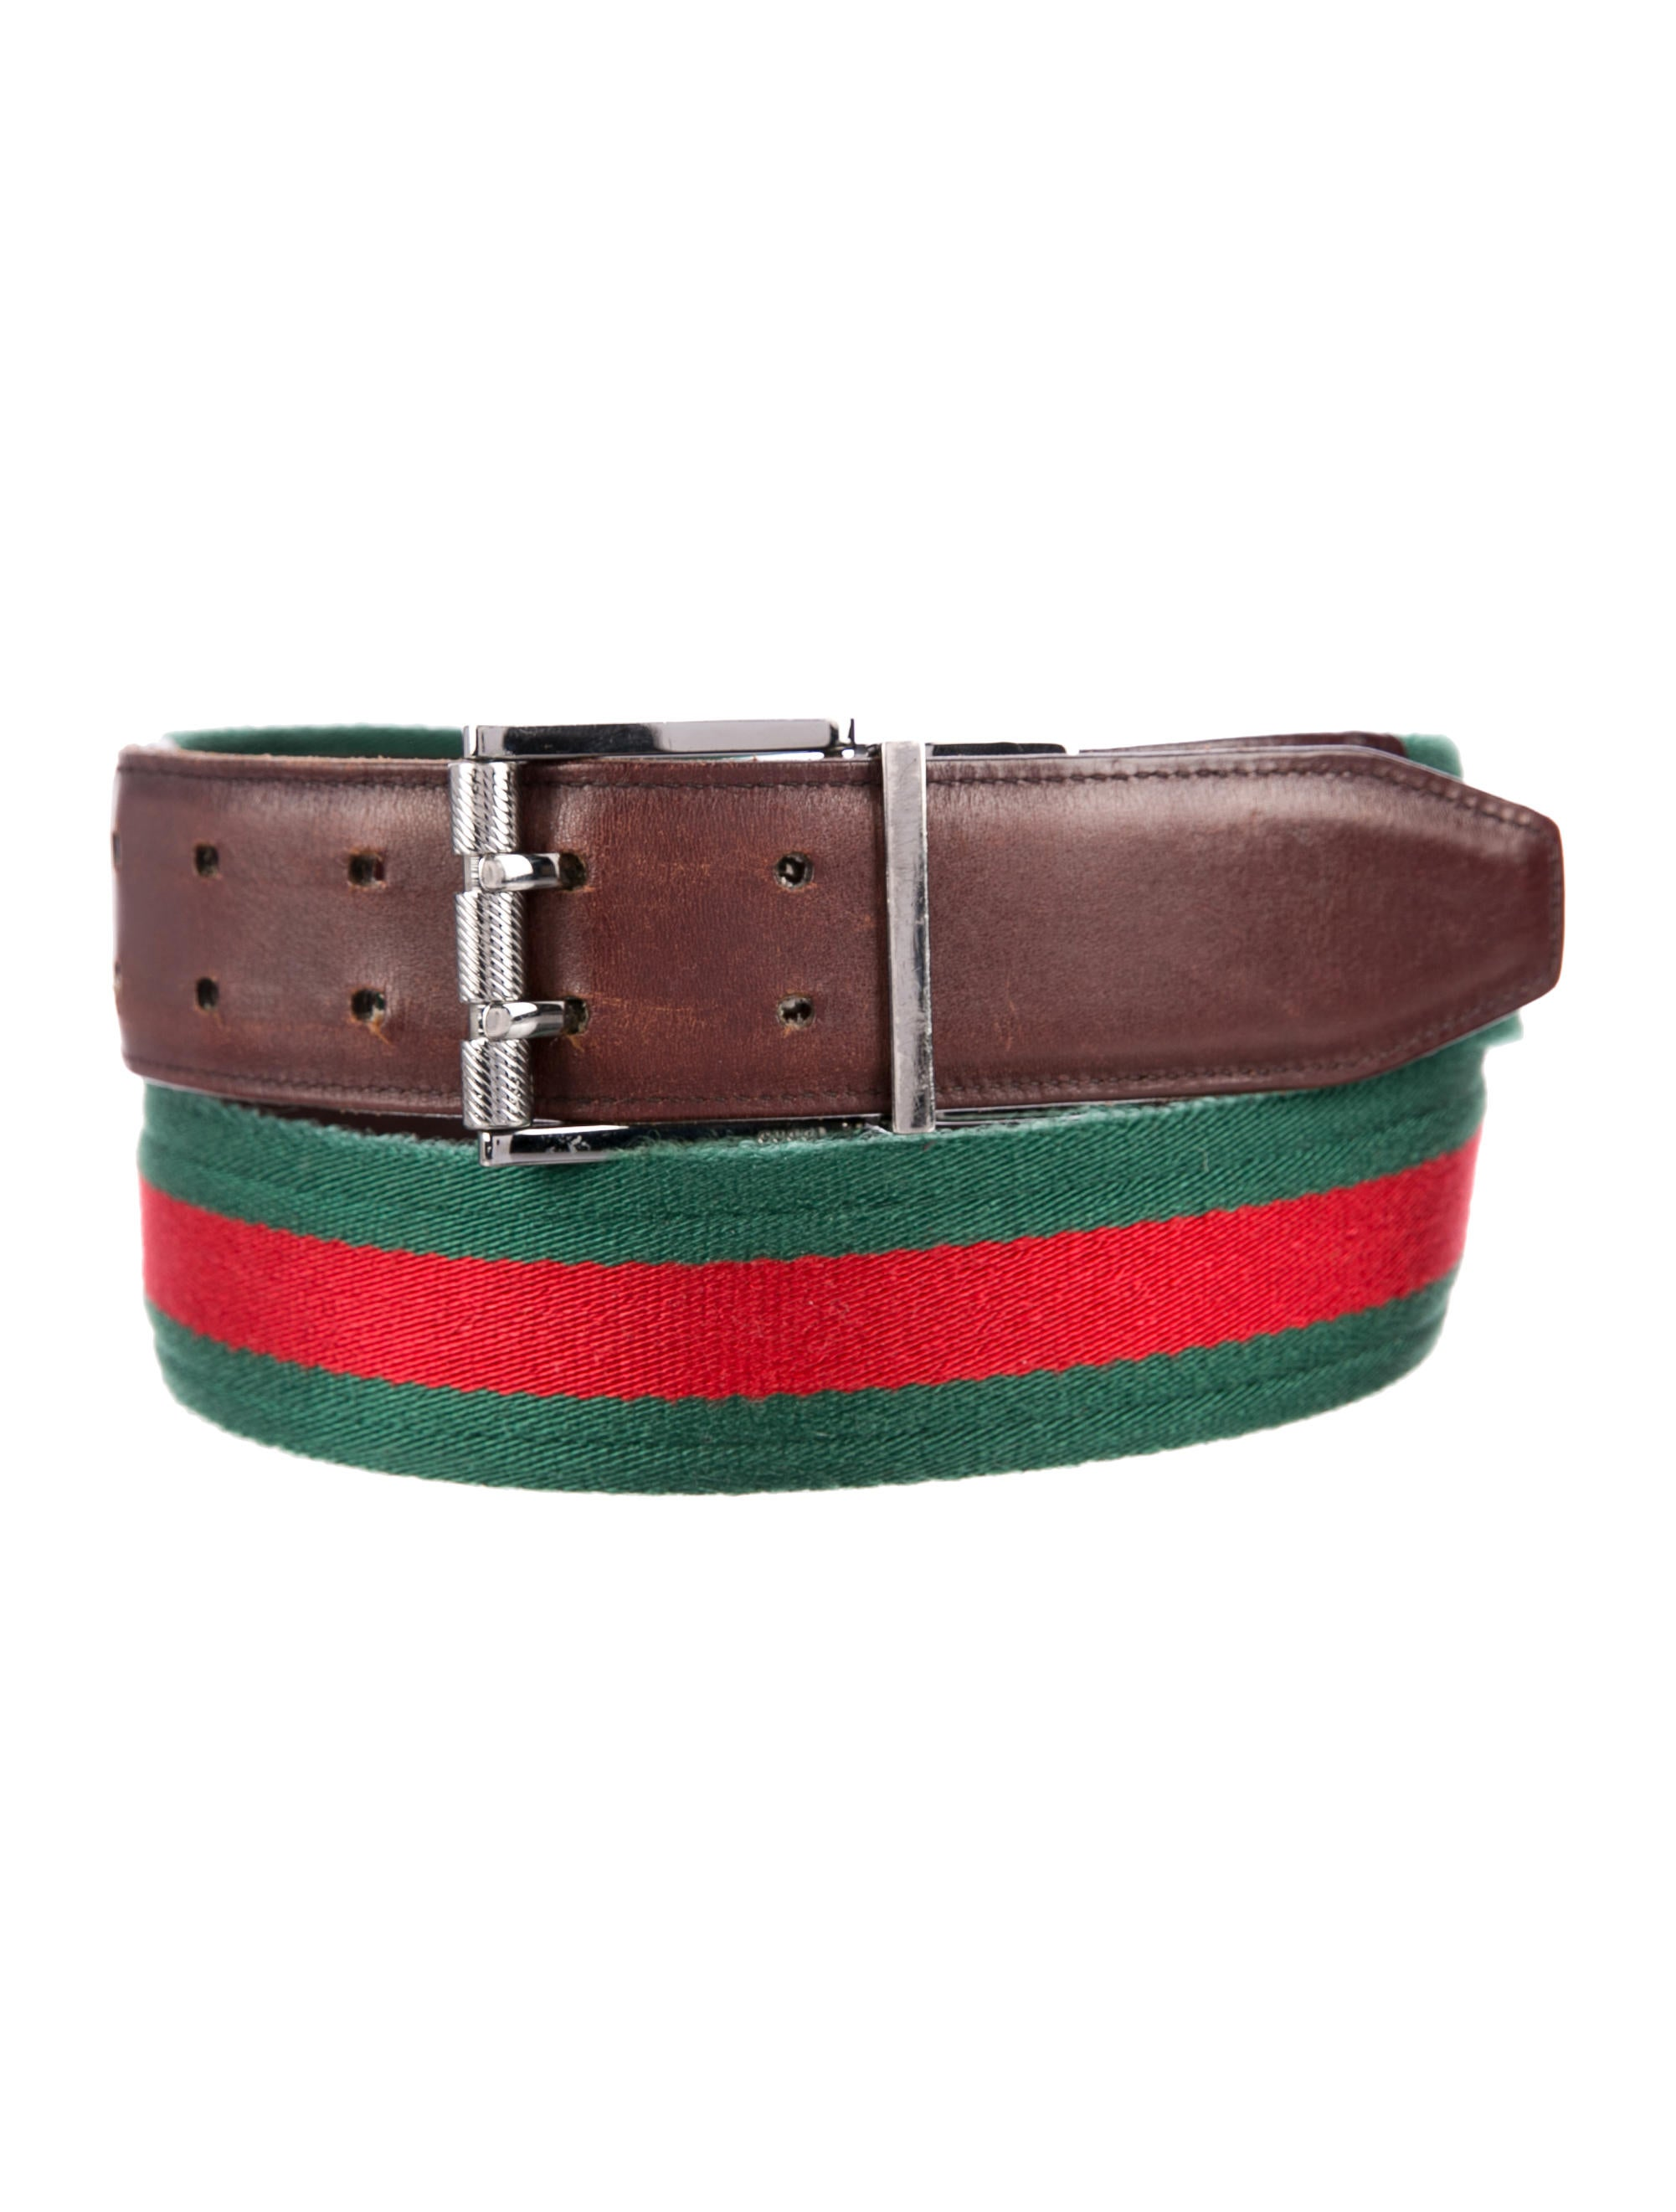 View Web Belts from Rothco. Our collection of classic military web belts includes over a two dozen color and size options. All Belts Military Web Belts Leather Belt Belt Accessories Duty Belt Pistol Belt B.D.U. & Rigger Belt Suspenders & Shirt Stays. 1 2 > See All Rothco Military Web Belts With Flip Rothco GI Style Pistol Belt With M.